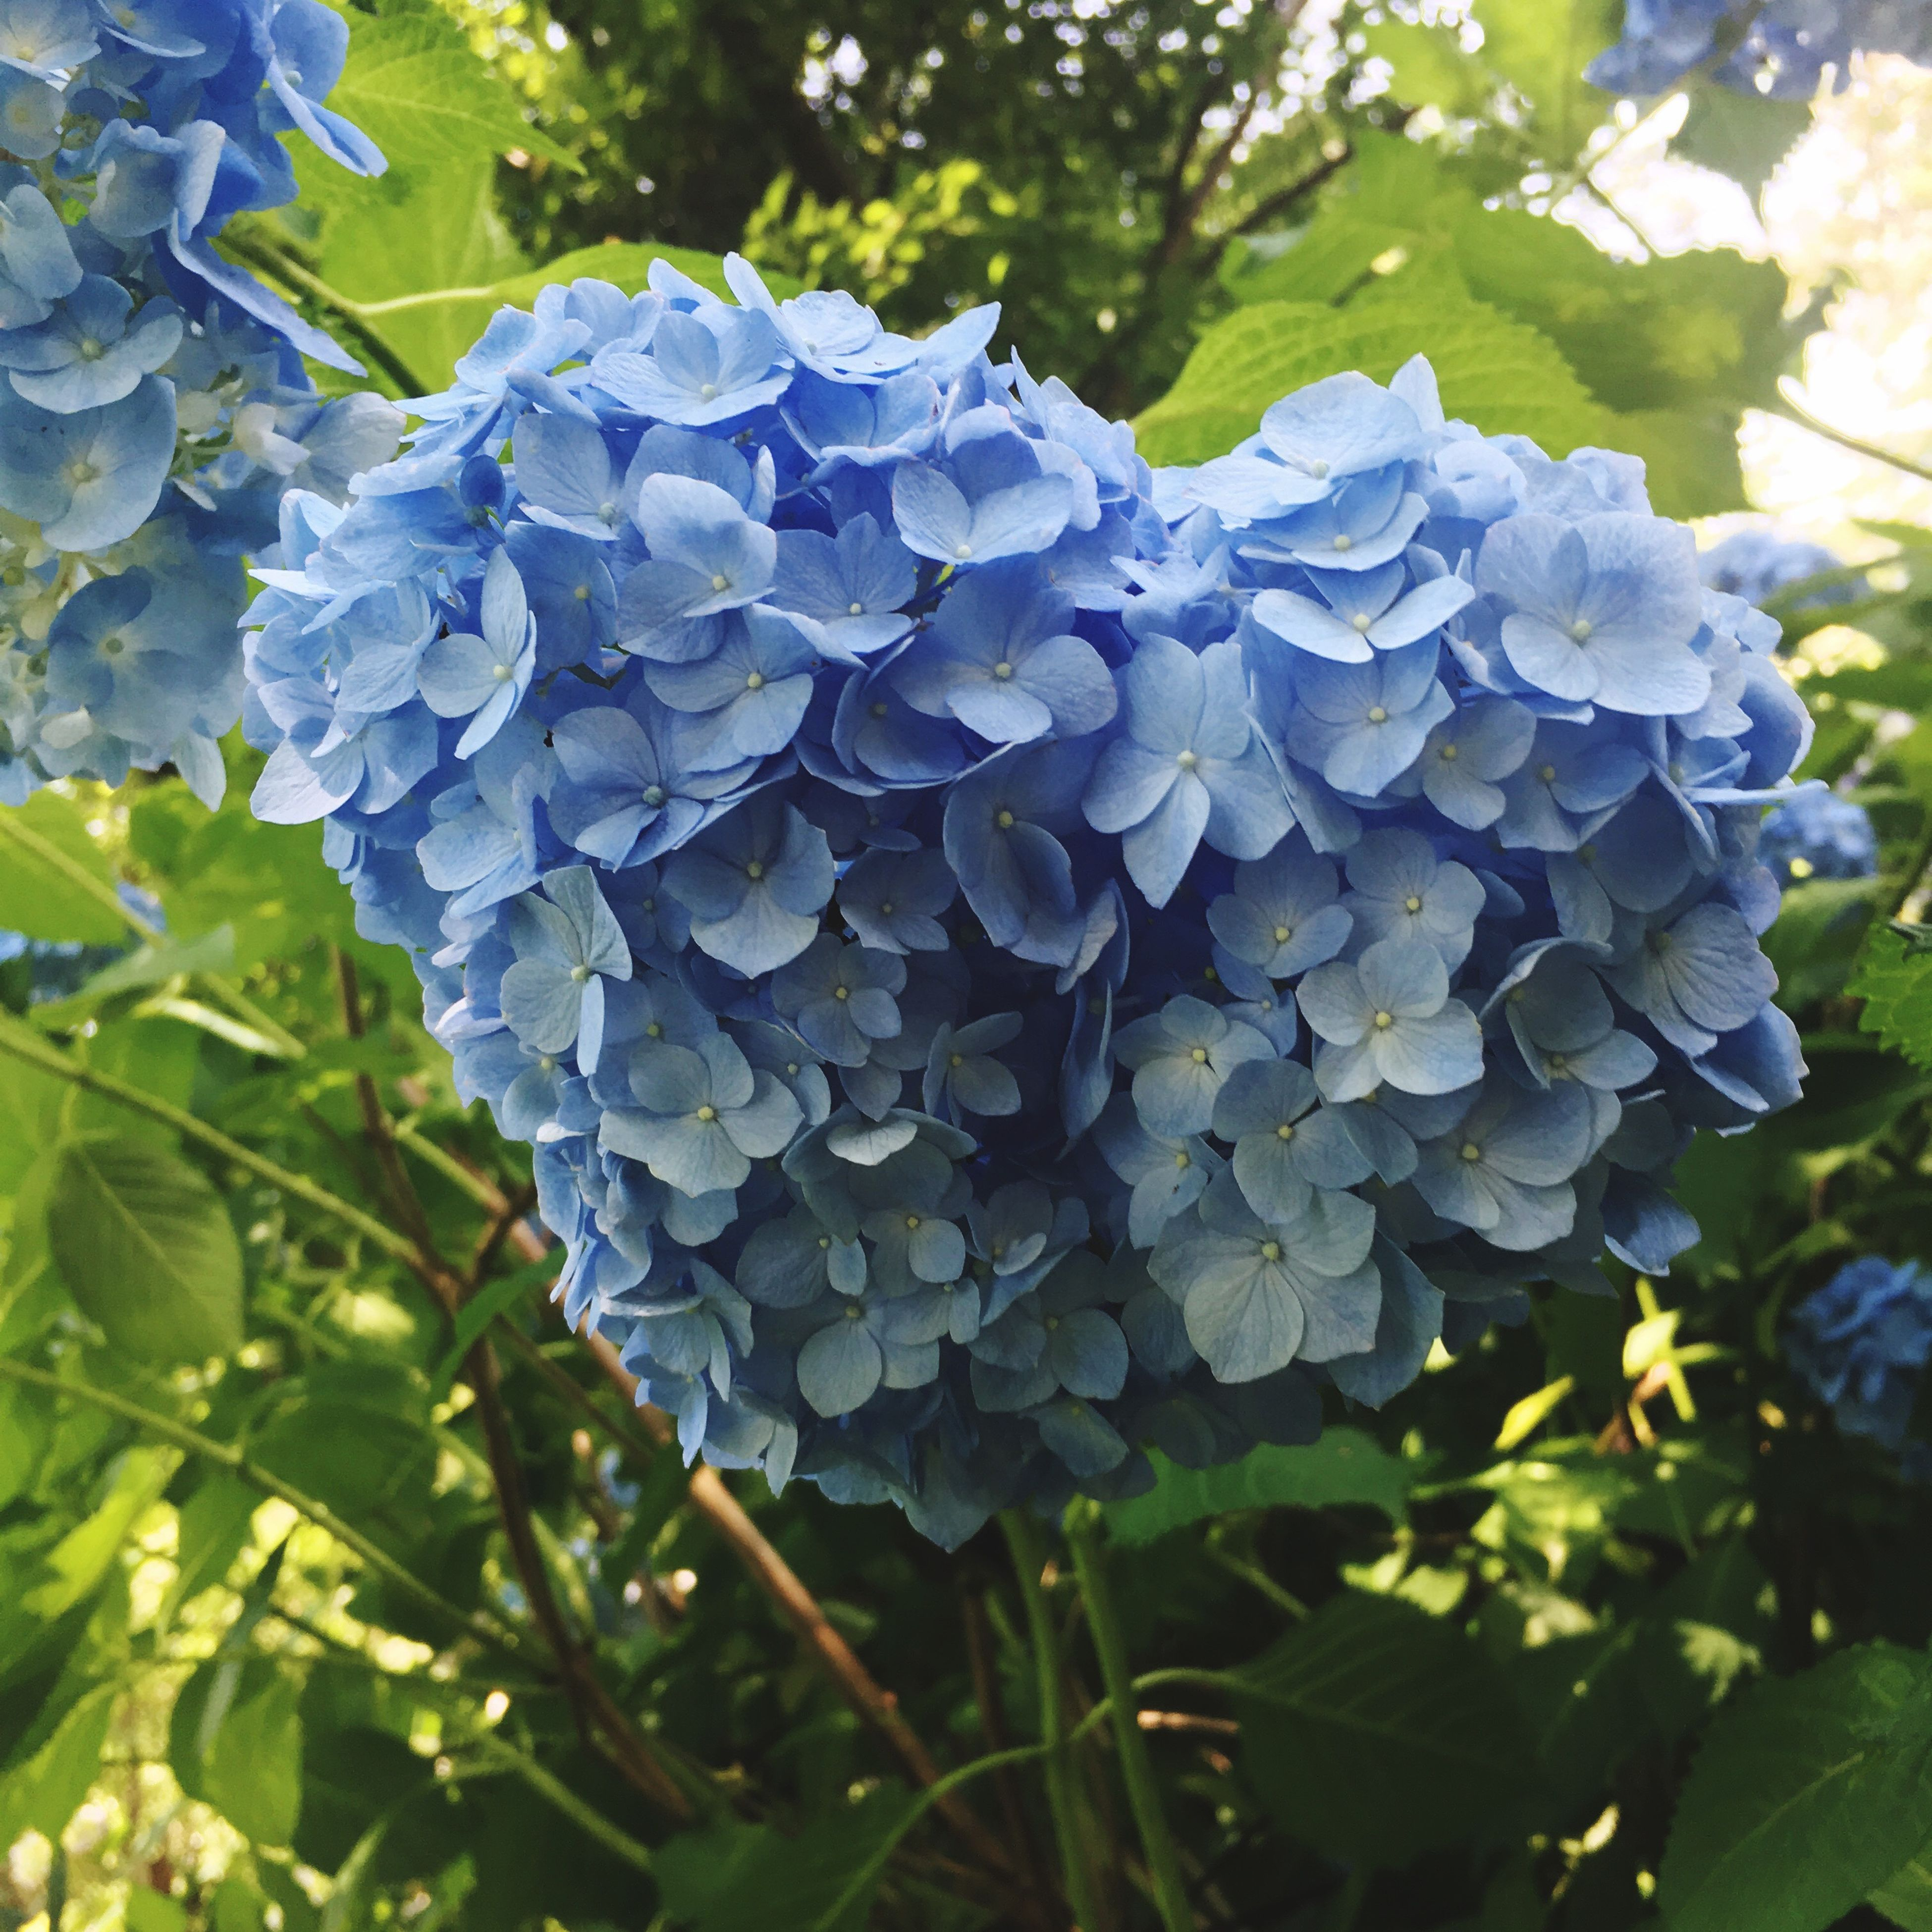 beauty in nature, flower, growth, nature, hydrangea, plant, day, fragility, petal, freshness, outdoors, no people, leaf, close-up, blooming, tree, flower head